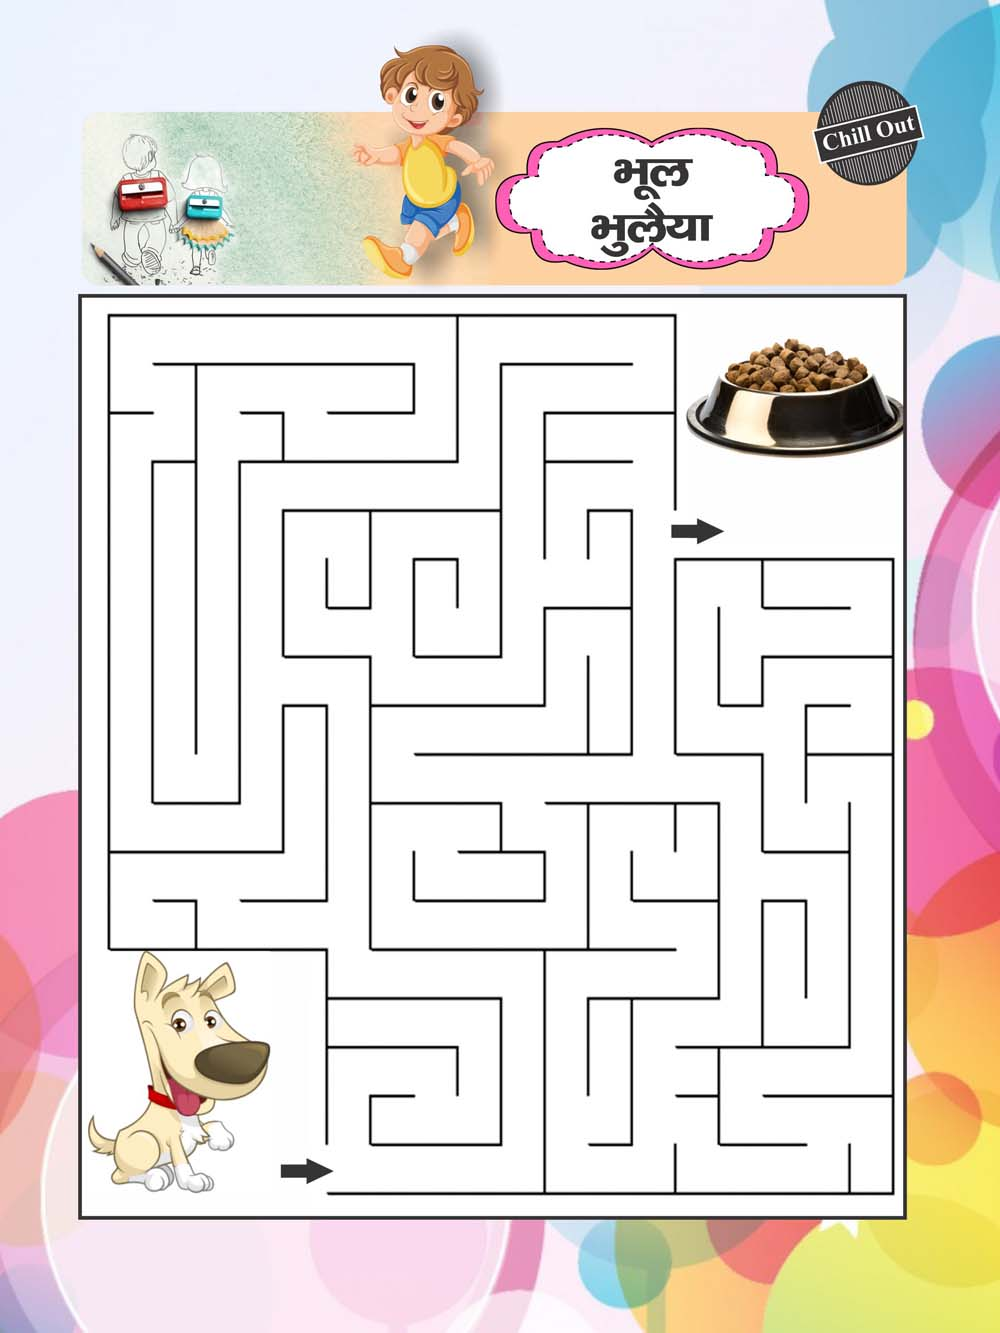 Solve the maze puzzle of this cute animal, part - 16